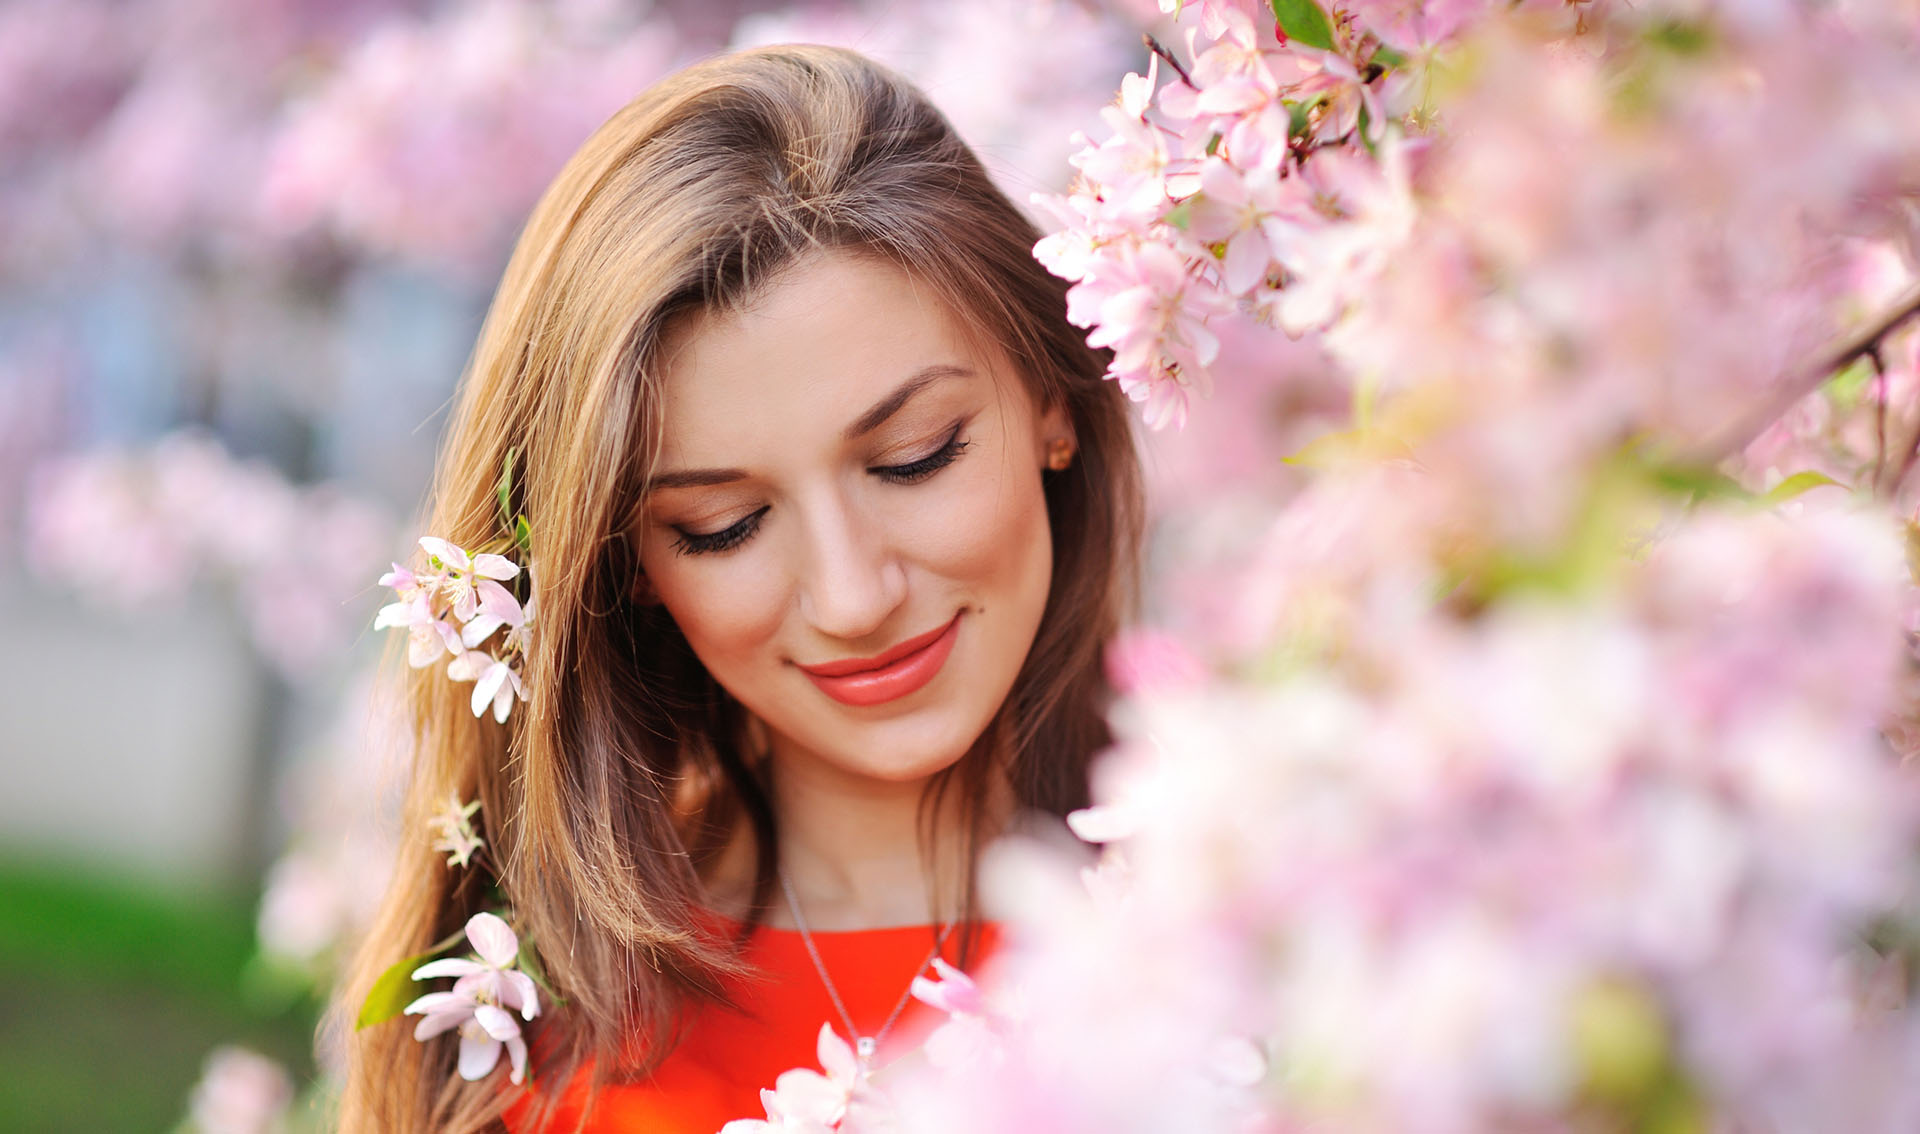 Put Your Best Skin Forward with These Spring Skin Tips